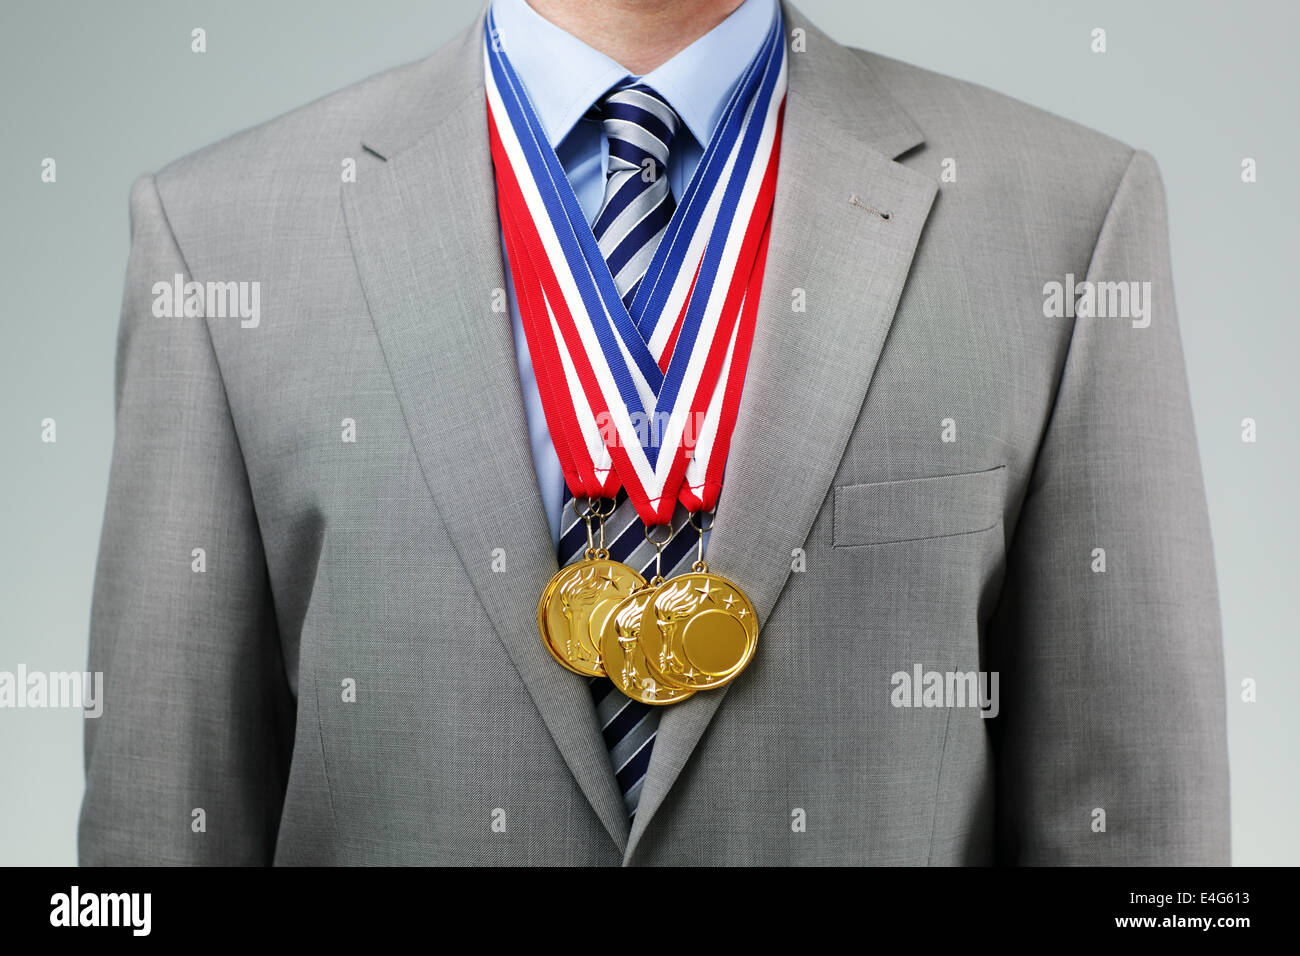 Successful businessman with gold medals - Stock Image